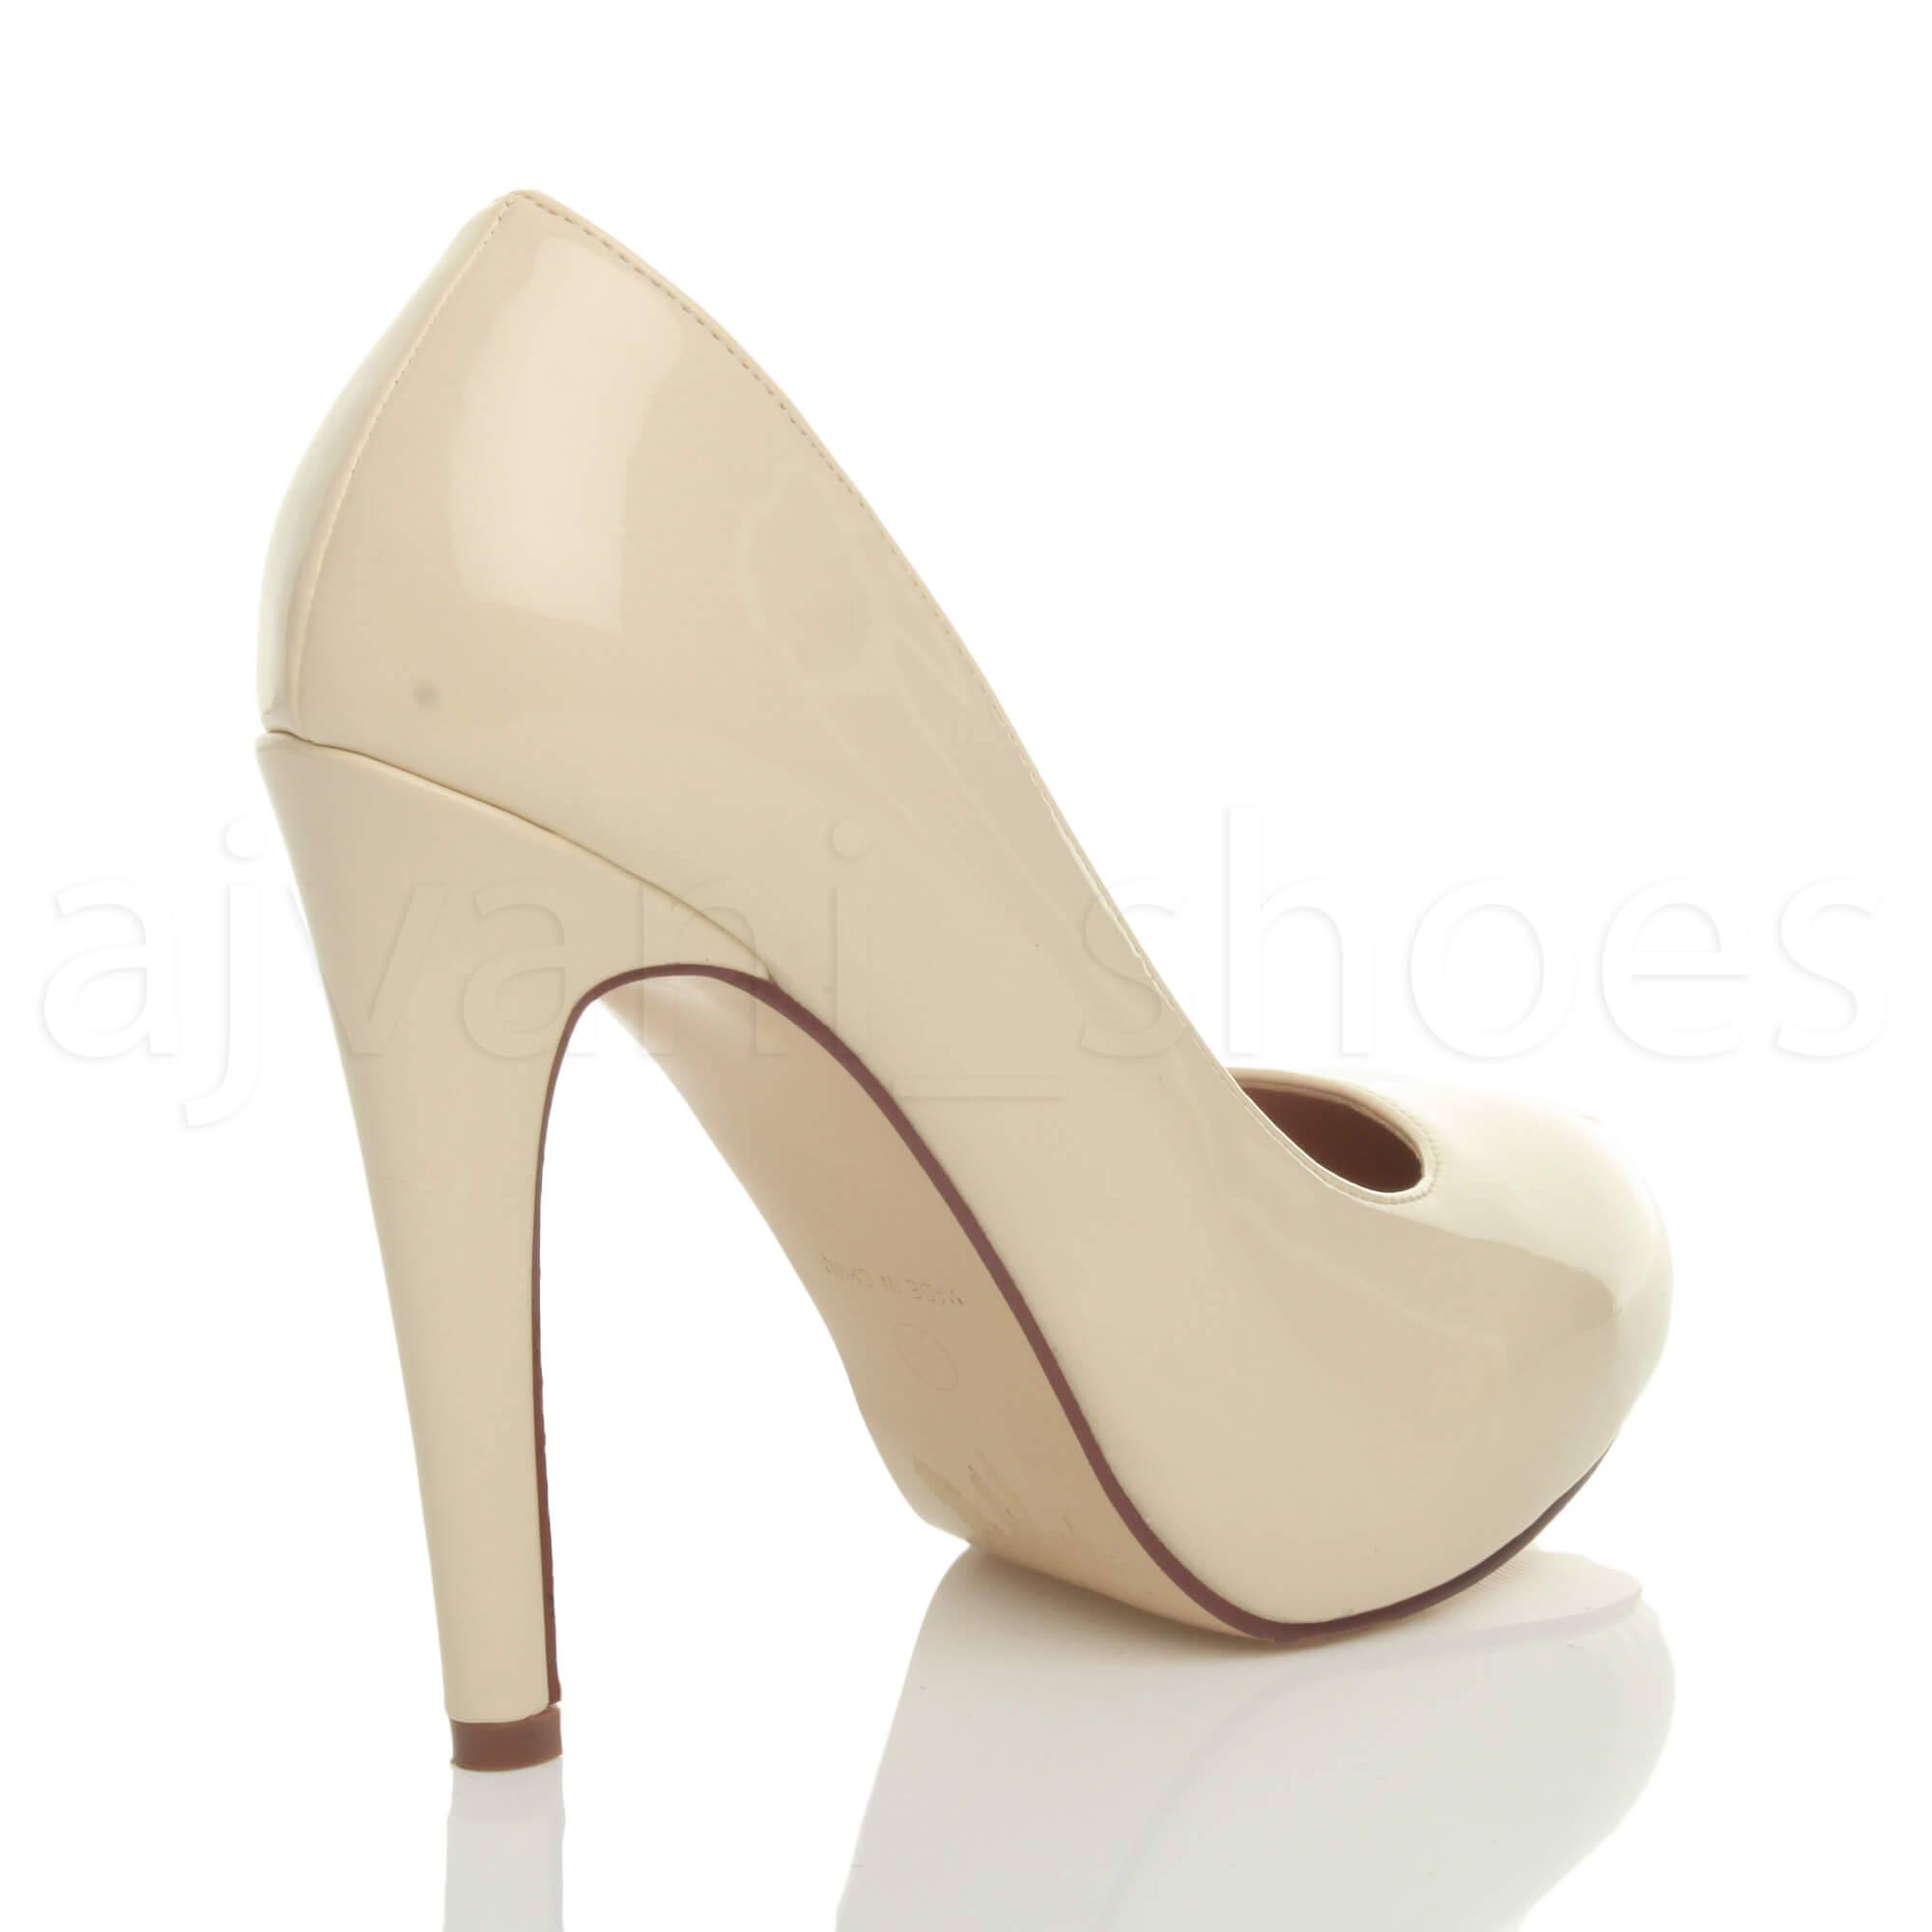 WOMENS-LADIES-HIGH-HEEL-CONCEALED-PLATFORM-COURT-SHOES-PARTY-PROM-PUMPS-SIZE thumbnail 16